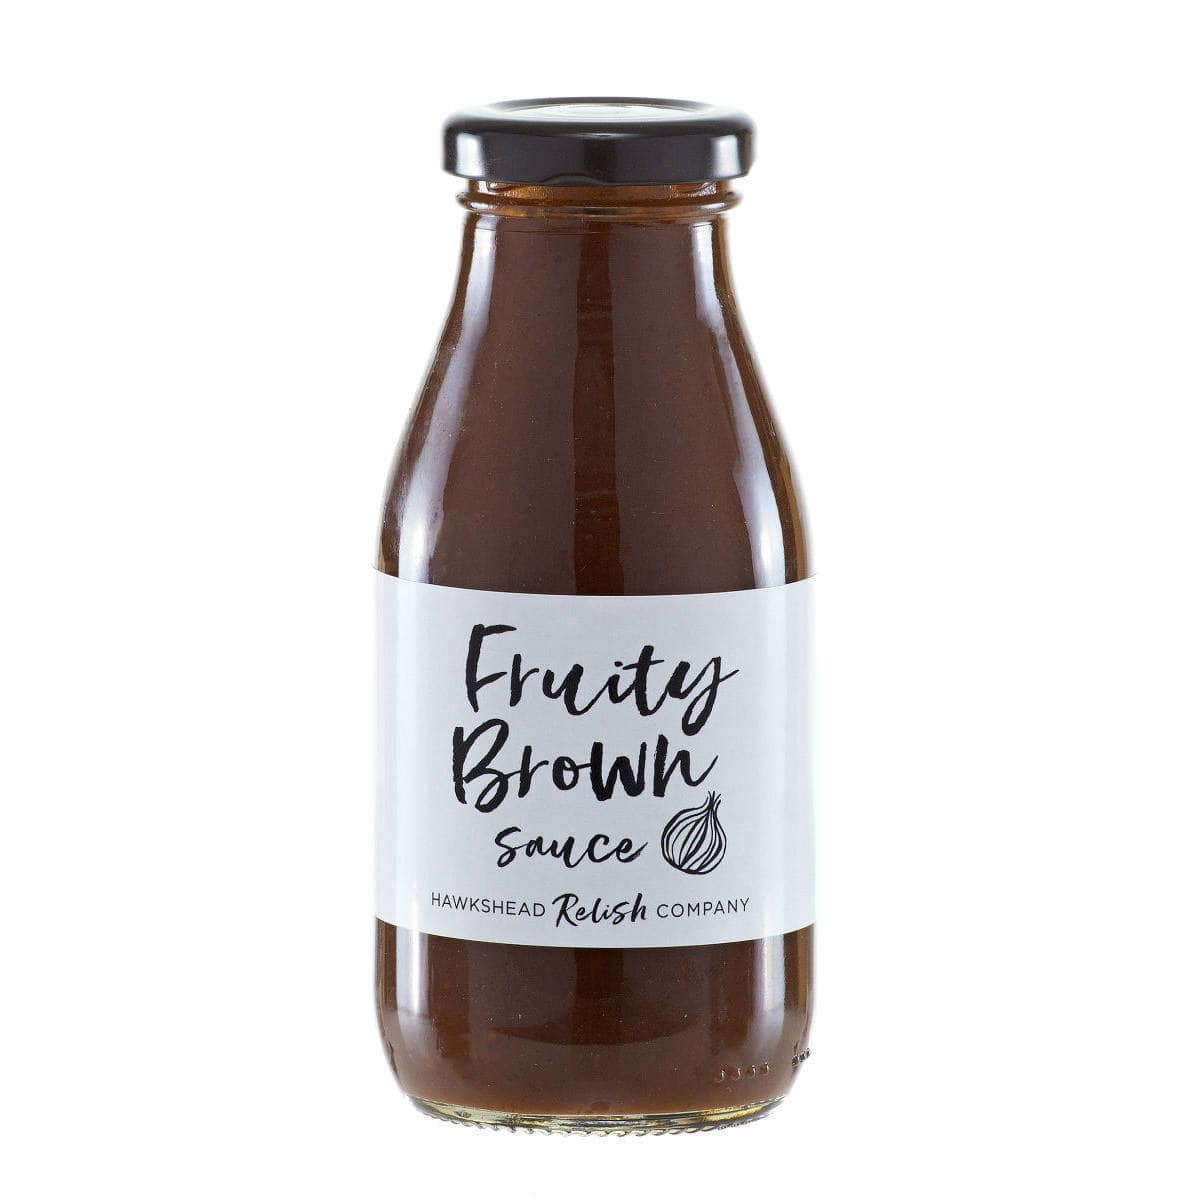 Fruity Brown Sauce Hawkshead Relish Restoration Yard